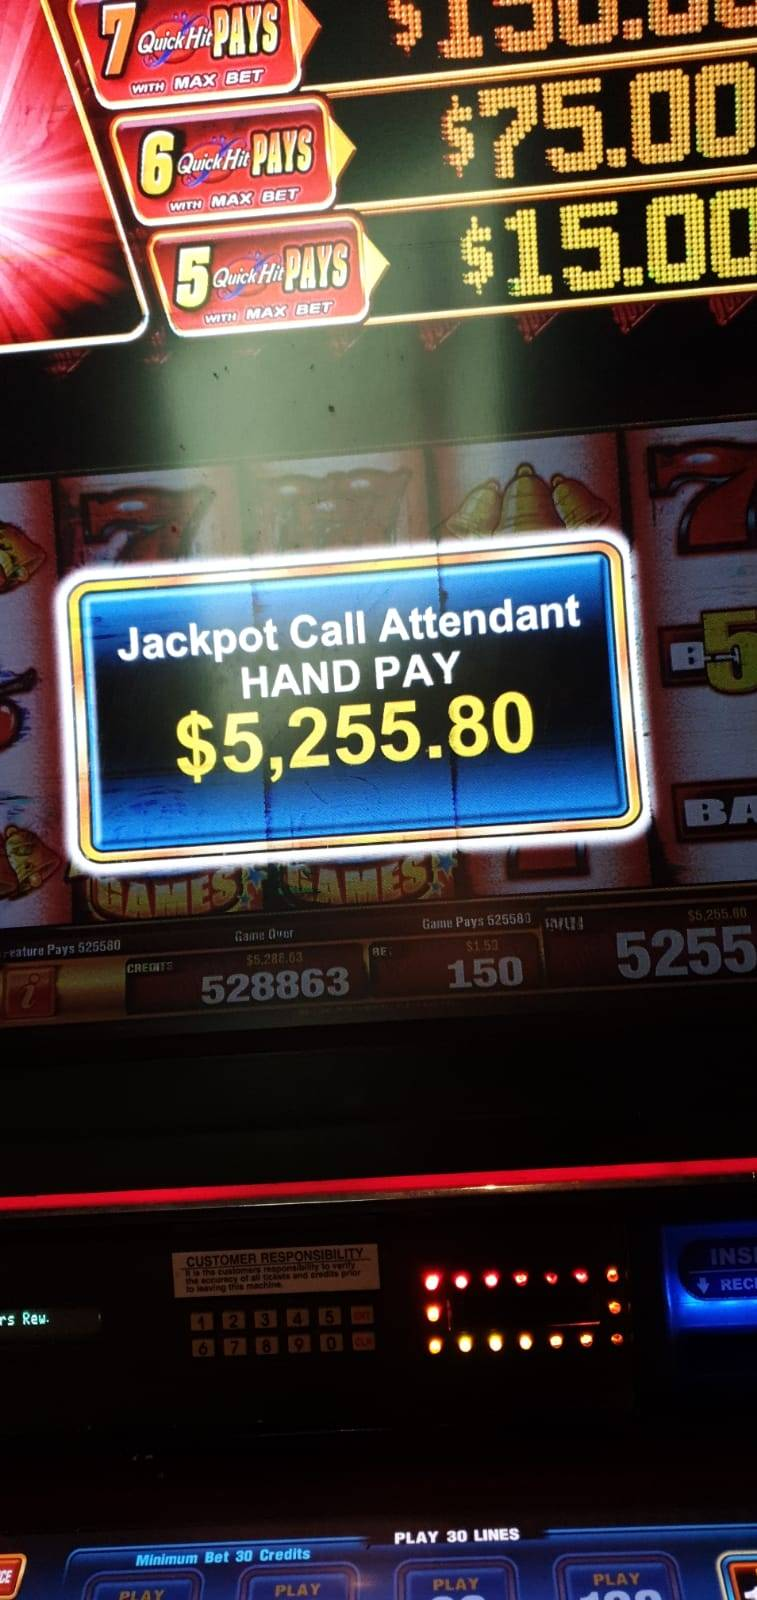 Jackpot Quick Hit Fever gokkast, Hand Pay